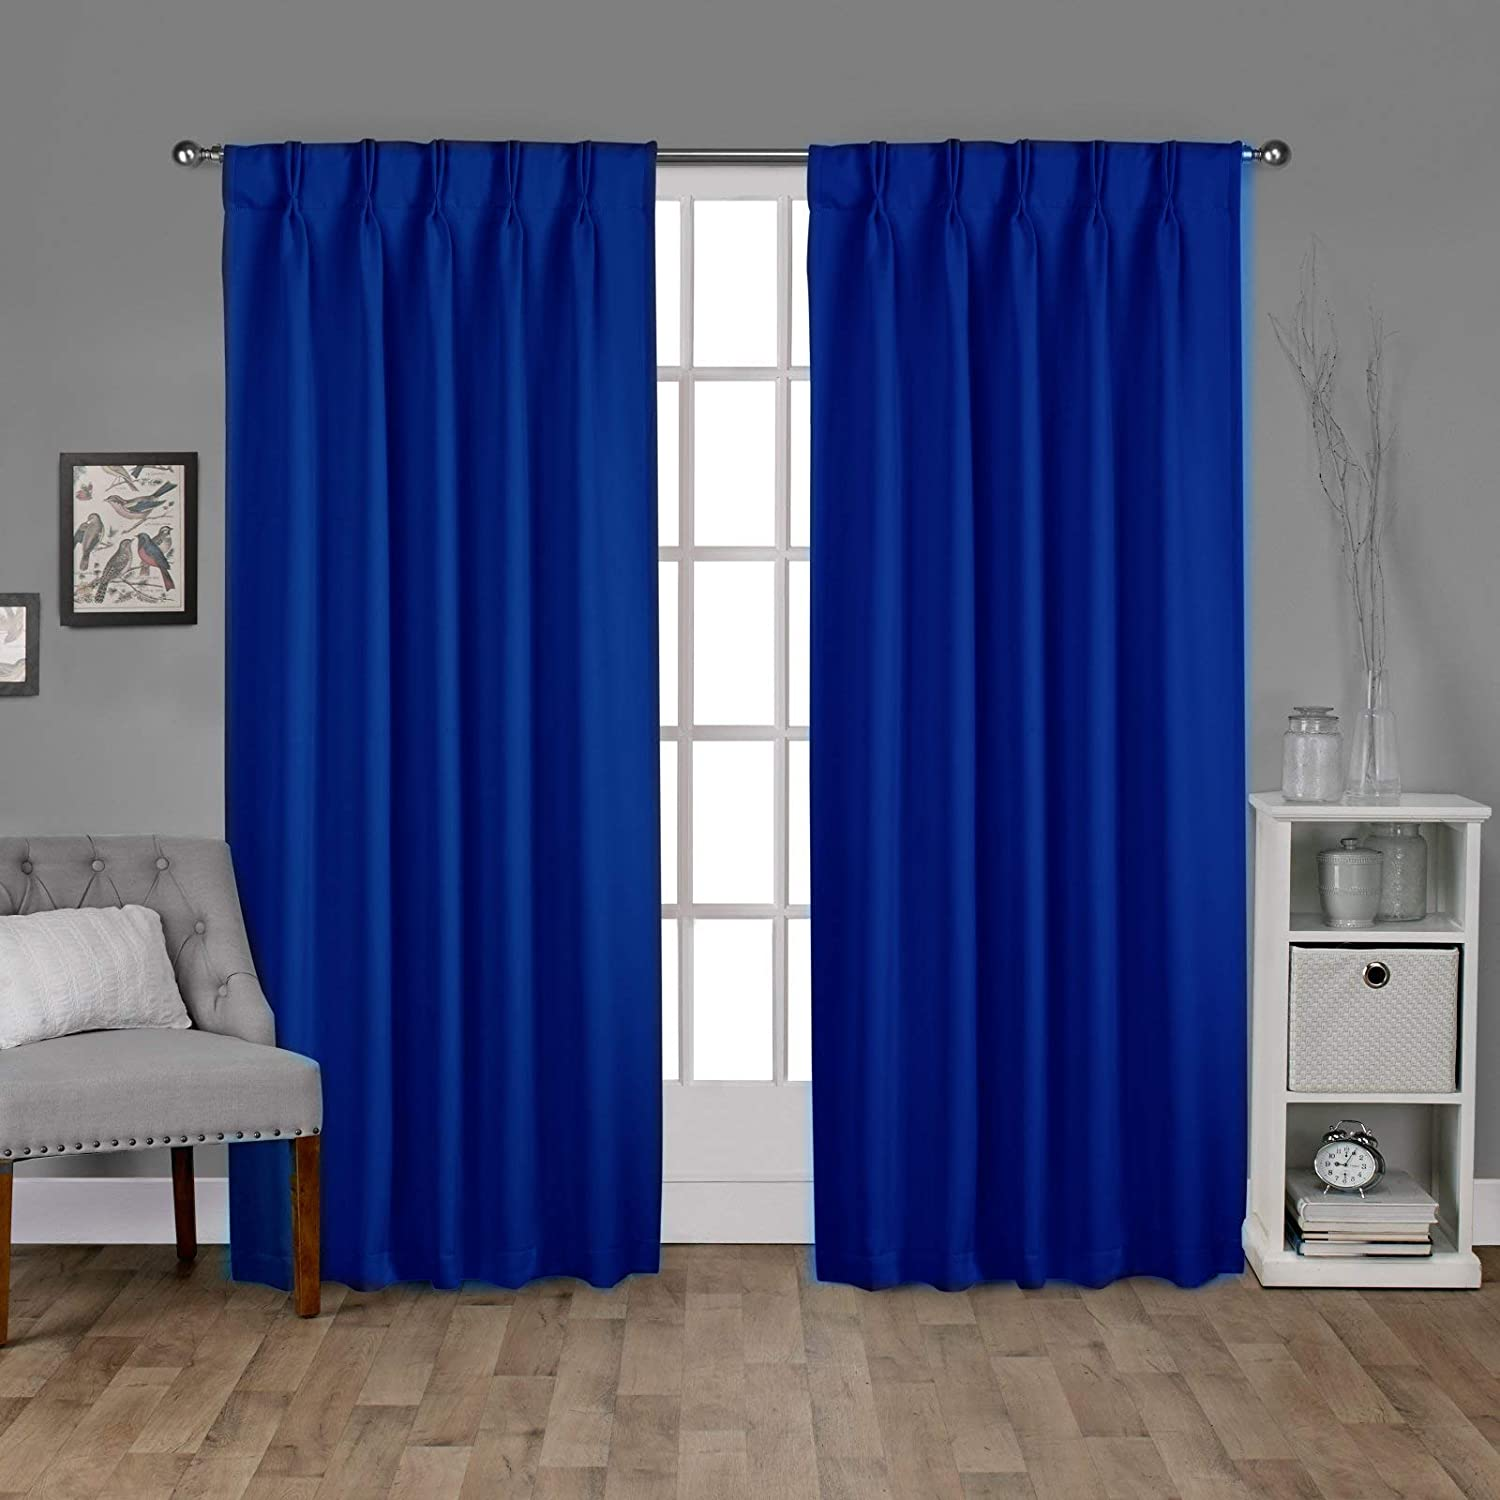 Popular brand Double Pinch Pleated Large Size Panel discharge sale Curtains Single in Perfect